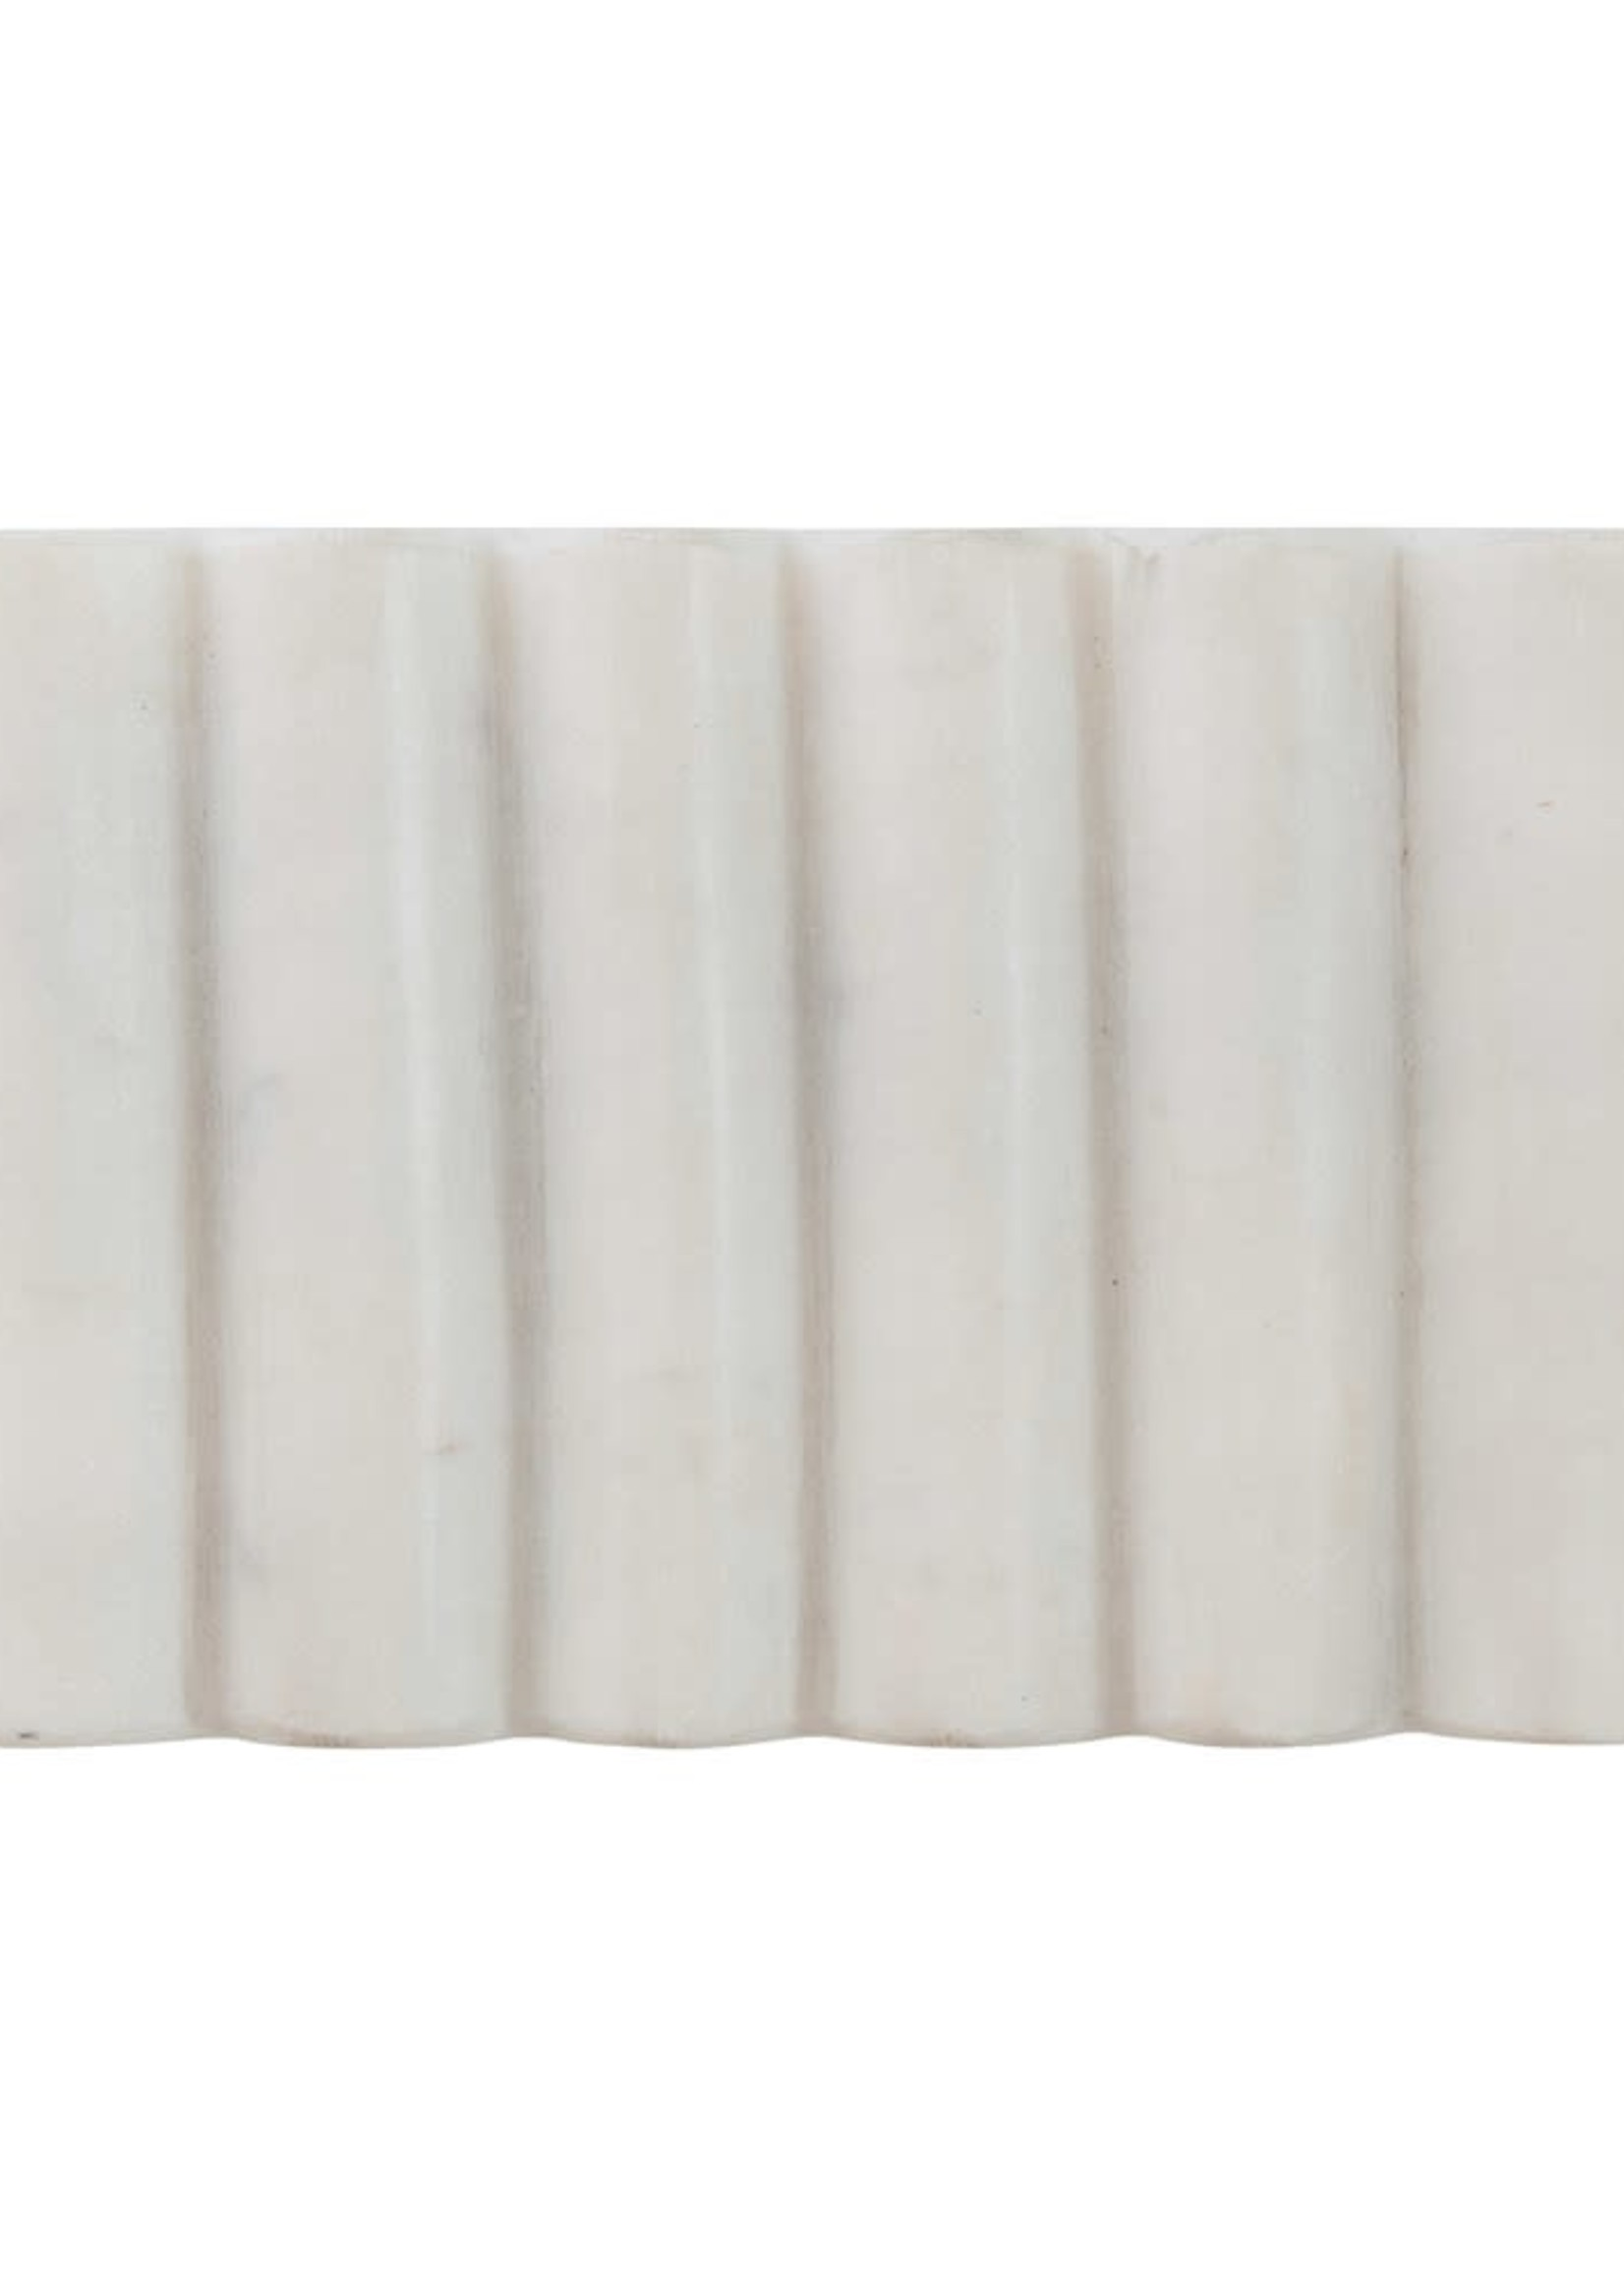 Carved Marble Soap Dish, White